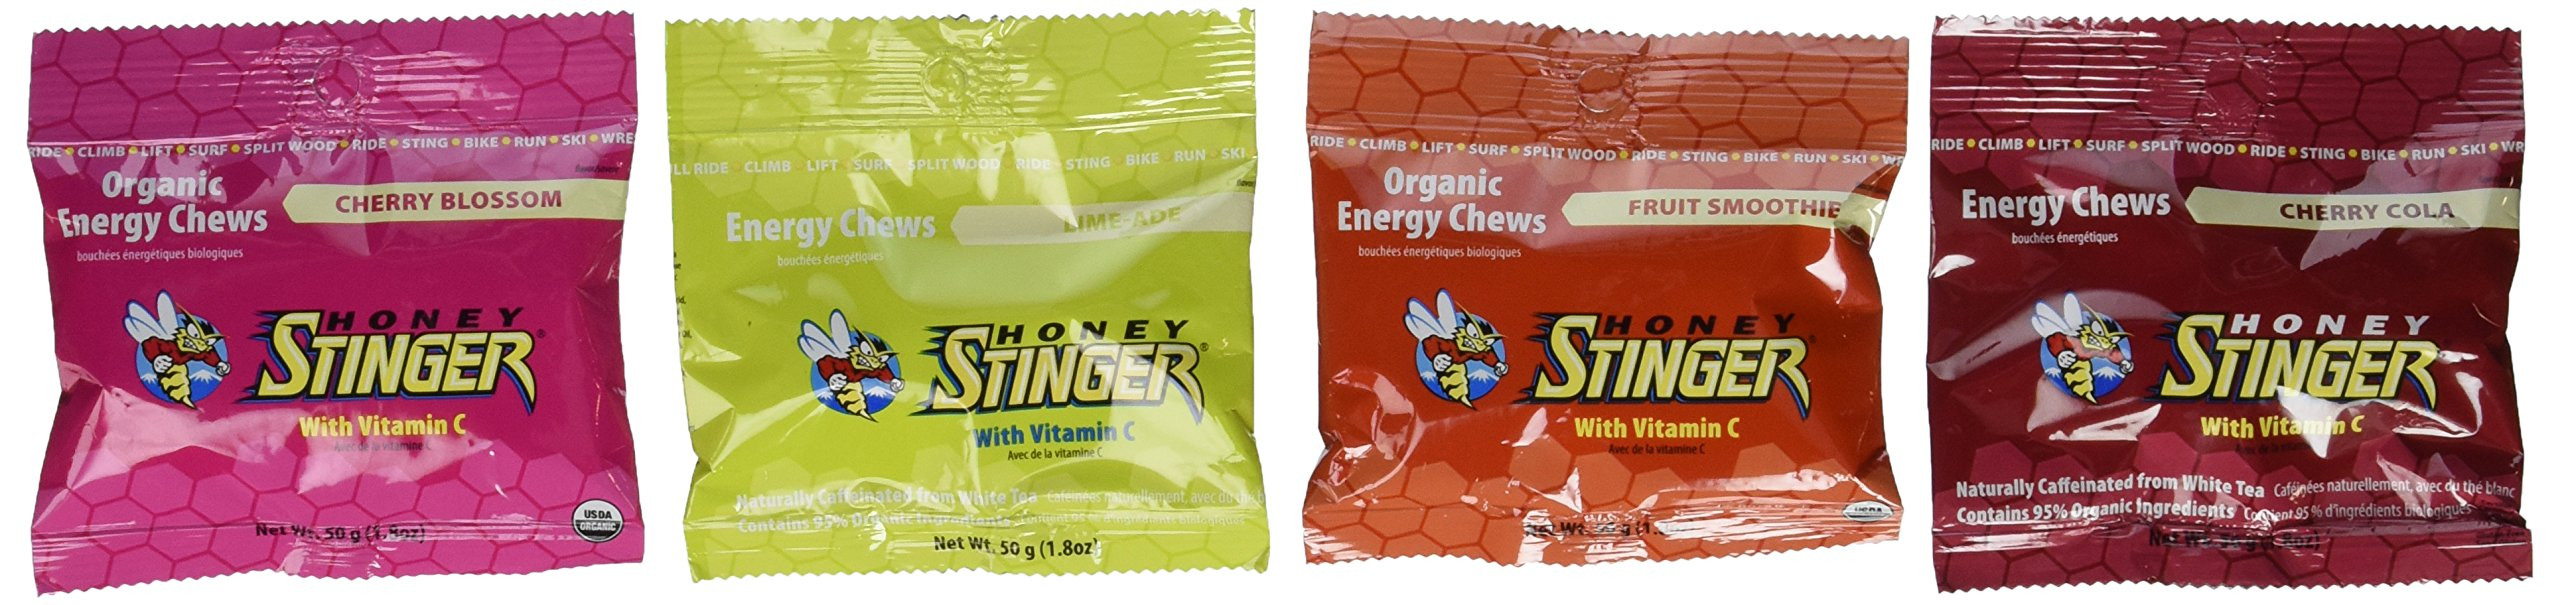 Honey Stinger Organic Energy Chews 4 Flavor Variety 1 Cherry Blossom, 1 Limeade - Caffeinated, 1 Cherry Cola - Caffeinated, 1 Fruit Smoothie (Cherry, Orange and Berry) (1.8 oz each, 4 count)